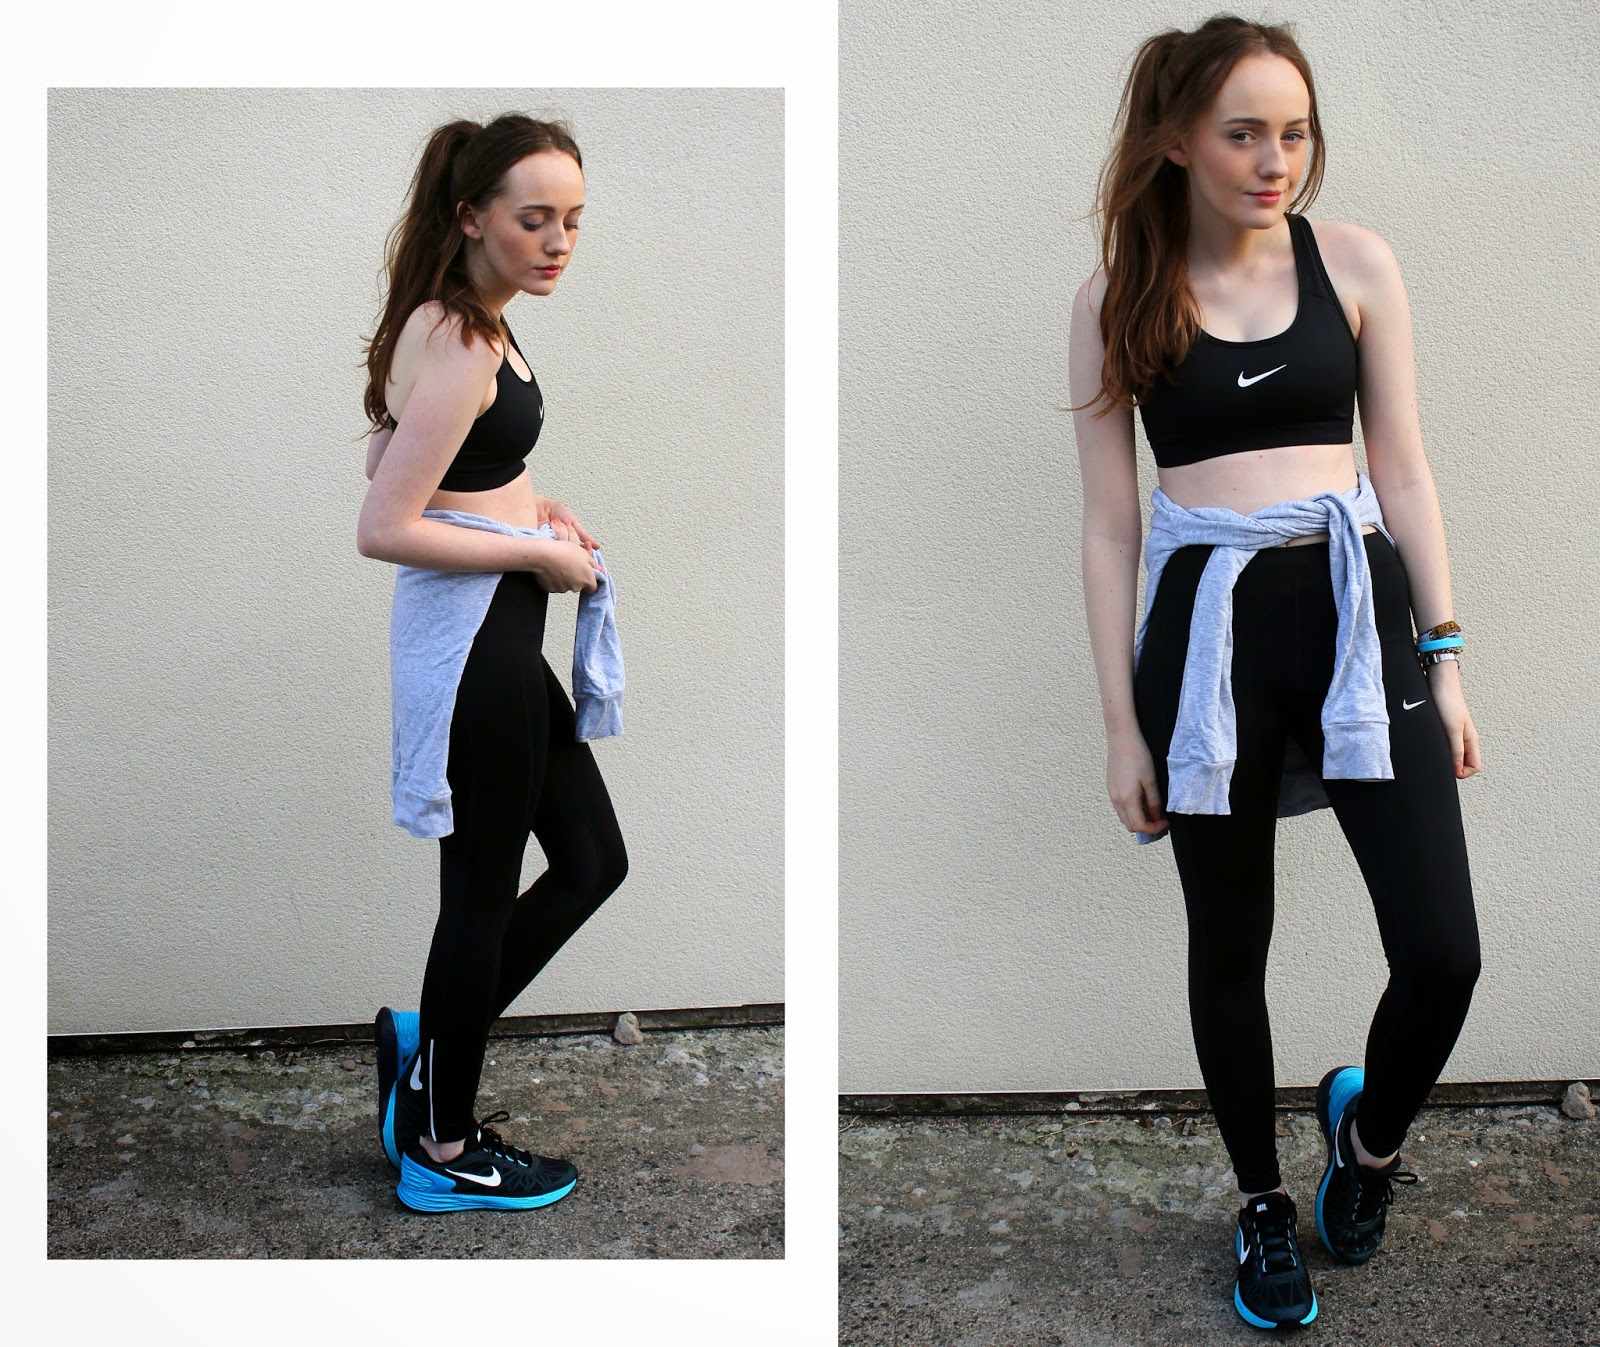 nike sports bra and leggings from JD sports, nike lunar glide blue and black trainers from millets fashion blogger review